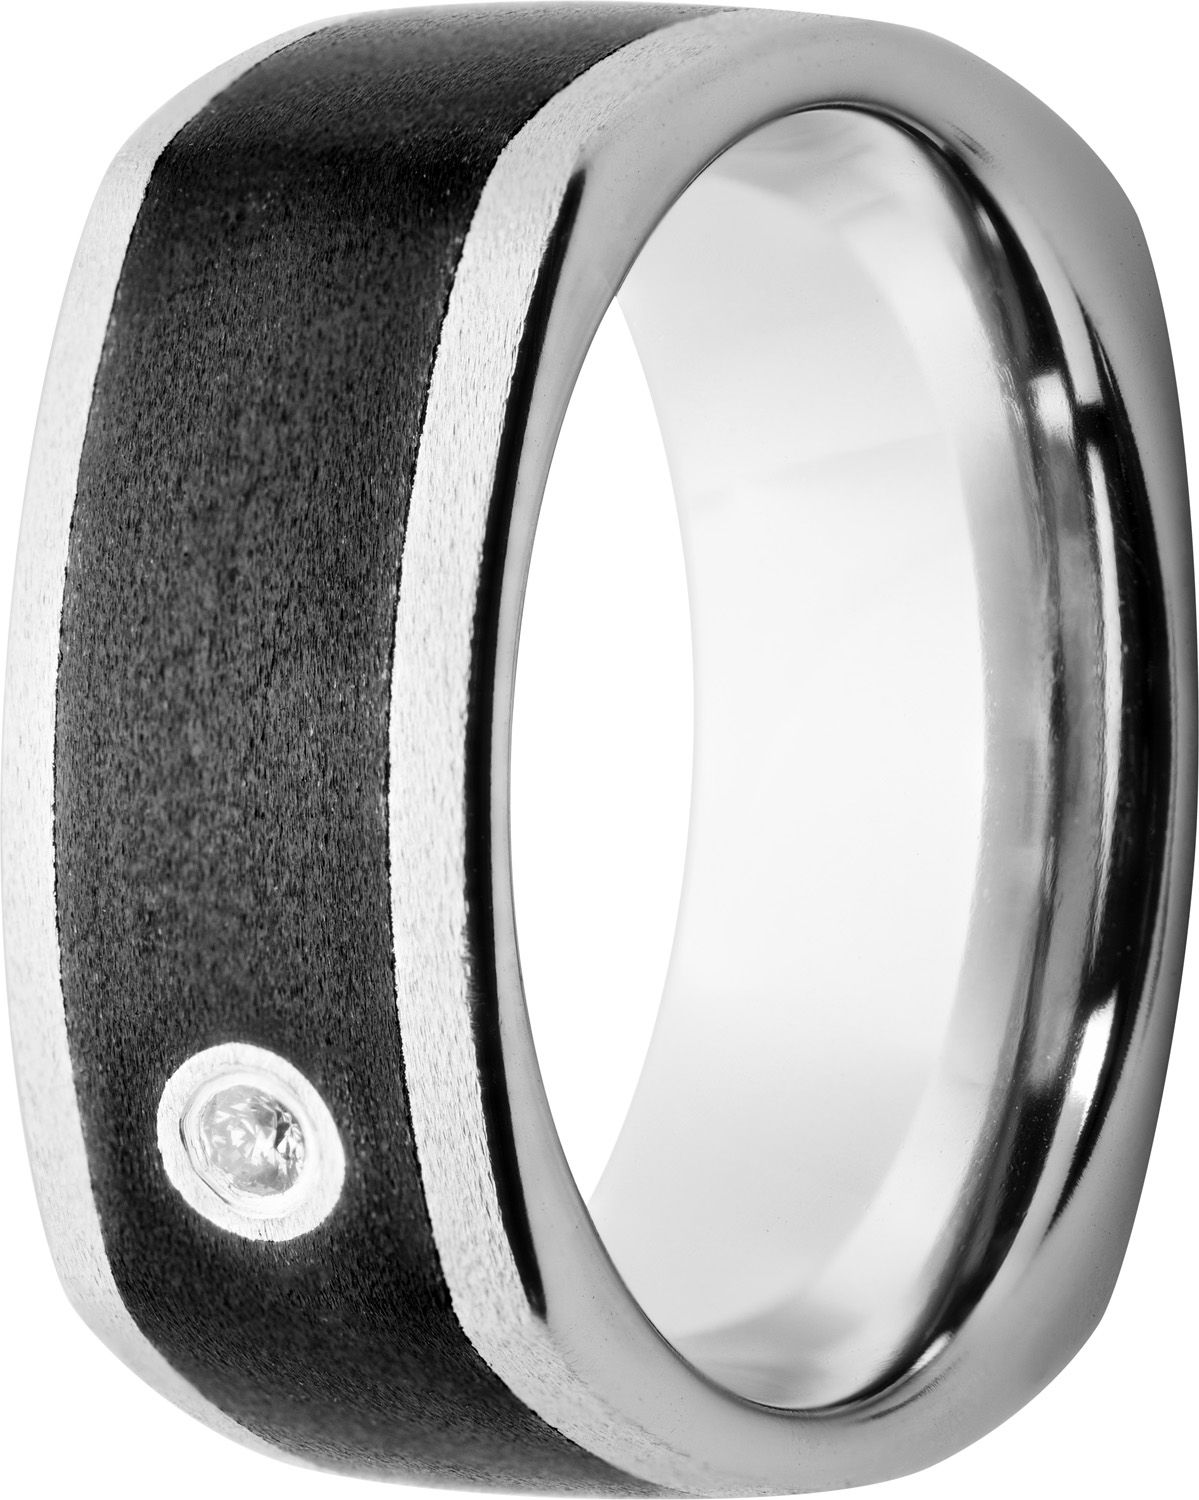 Euro Square Vitalium And Black Ceramic Wedding Band With Diamond Www Jewelryinnovationsinc Com Ceramic Wedding Bands Diamond Wedding Bands Rings For Men